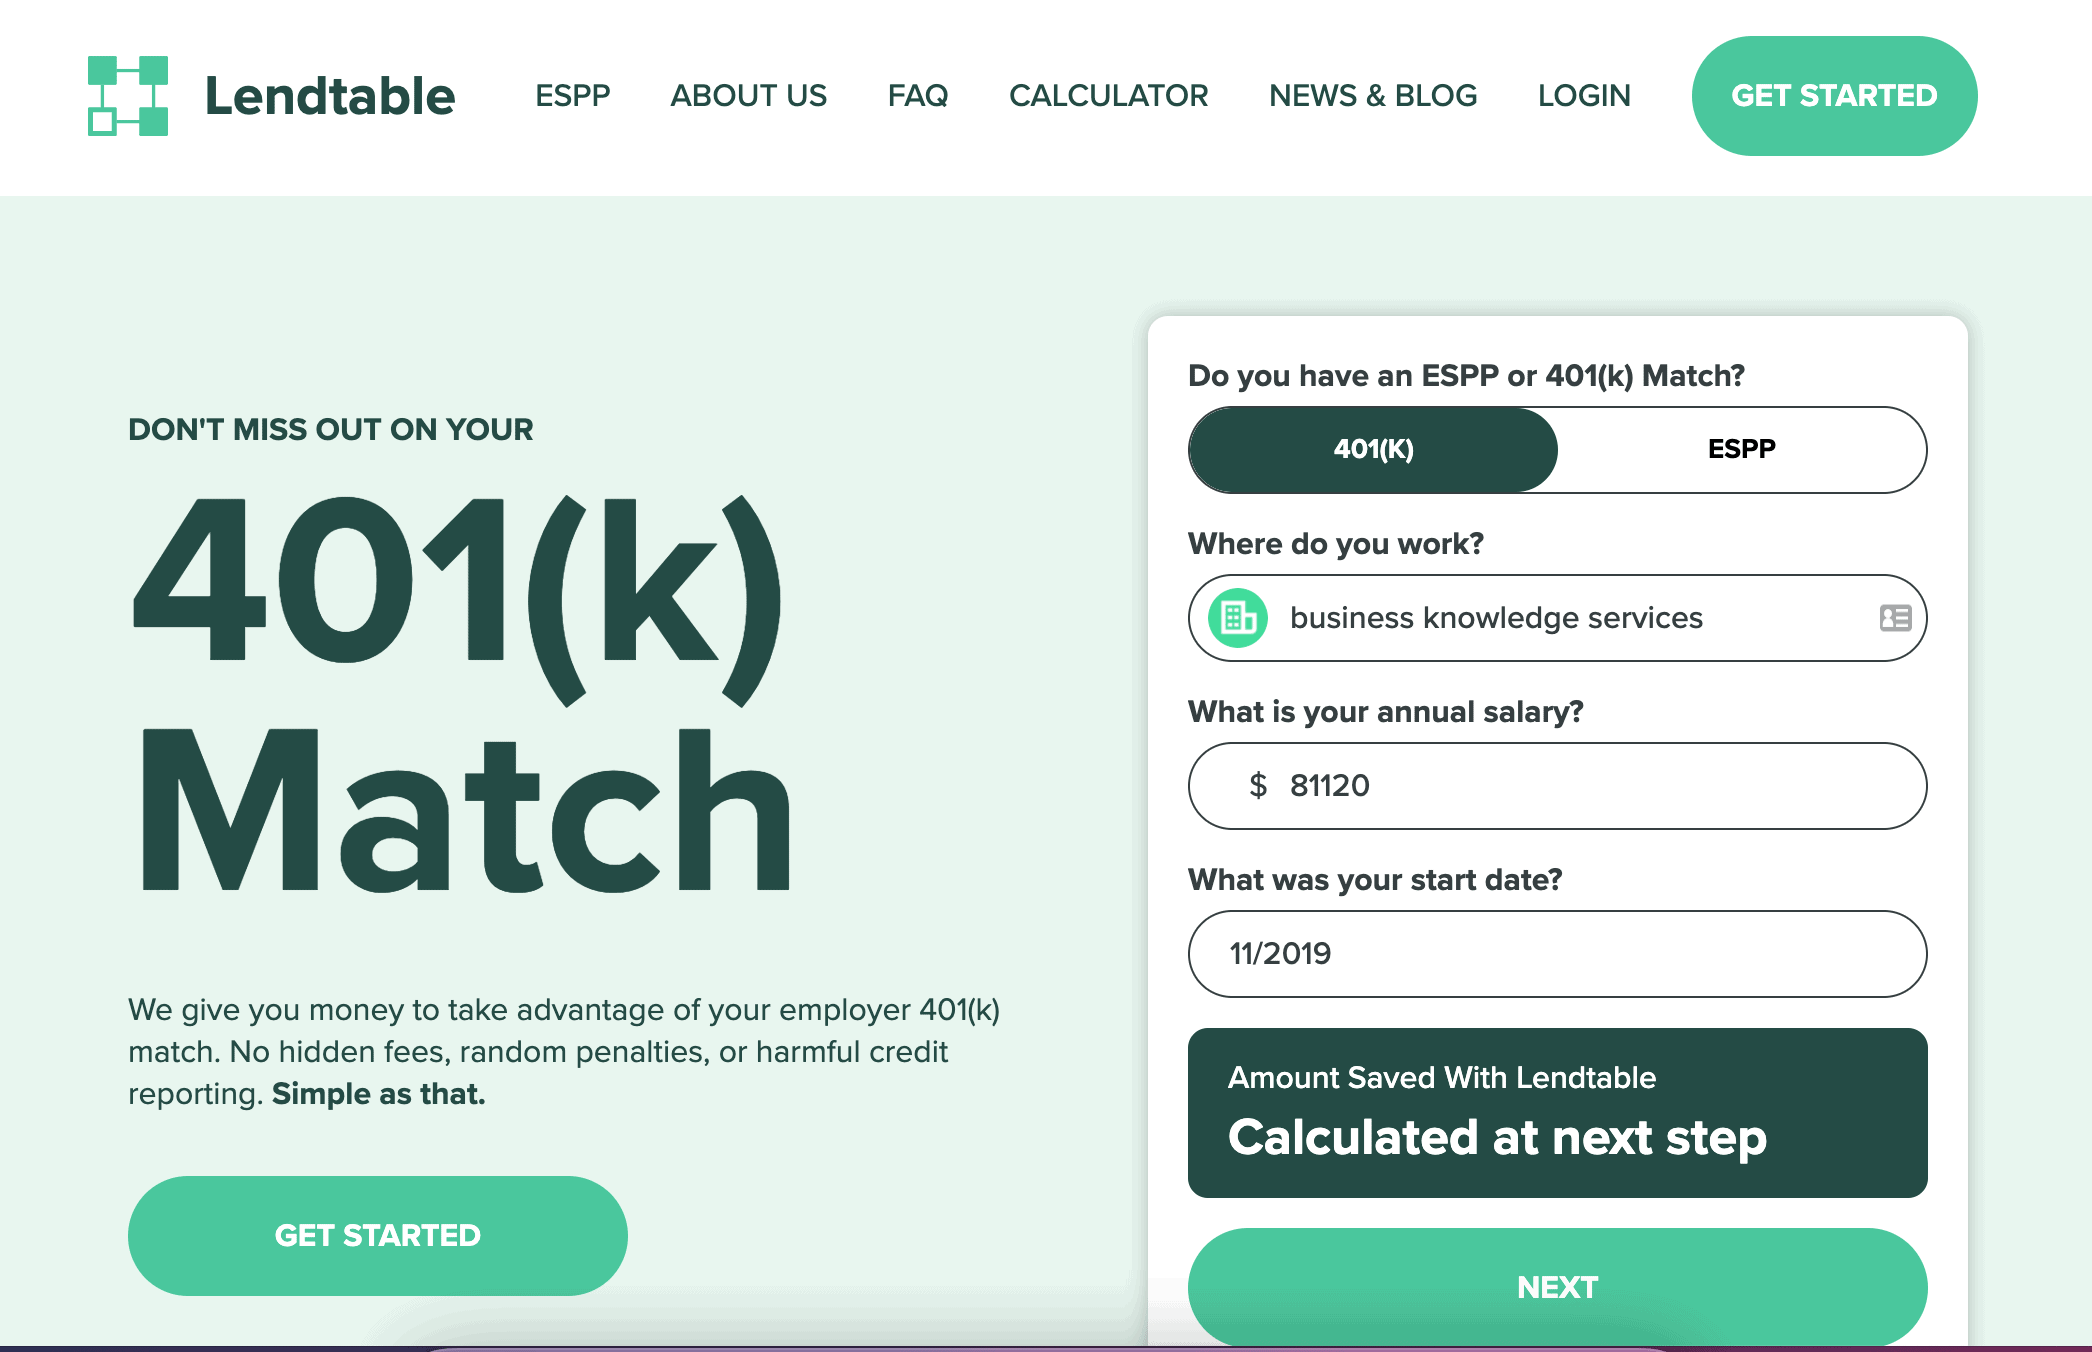 Lendtable | Dont miss out on your 401(k) match